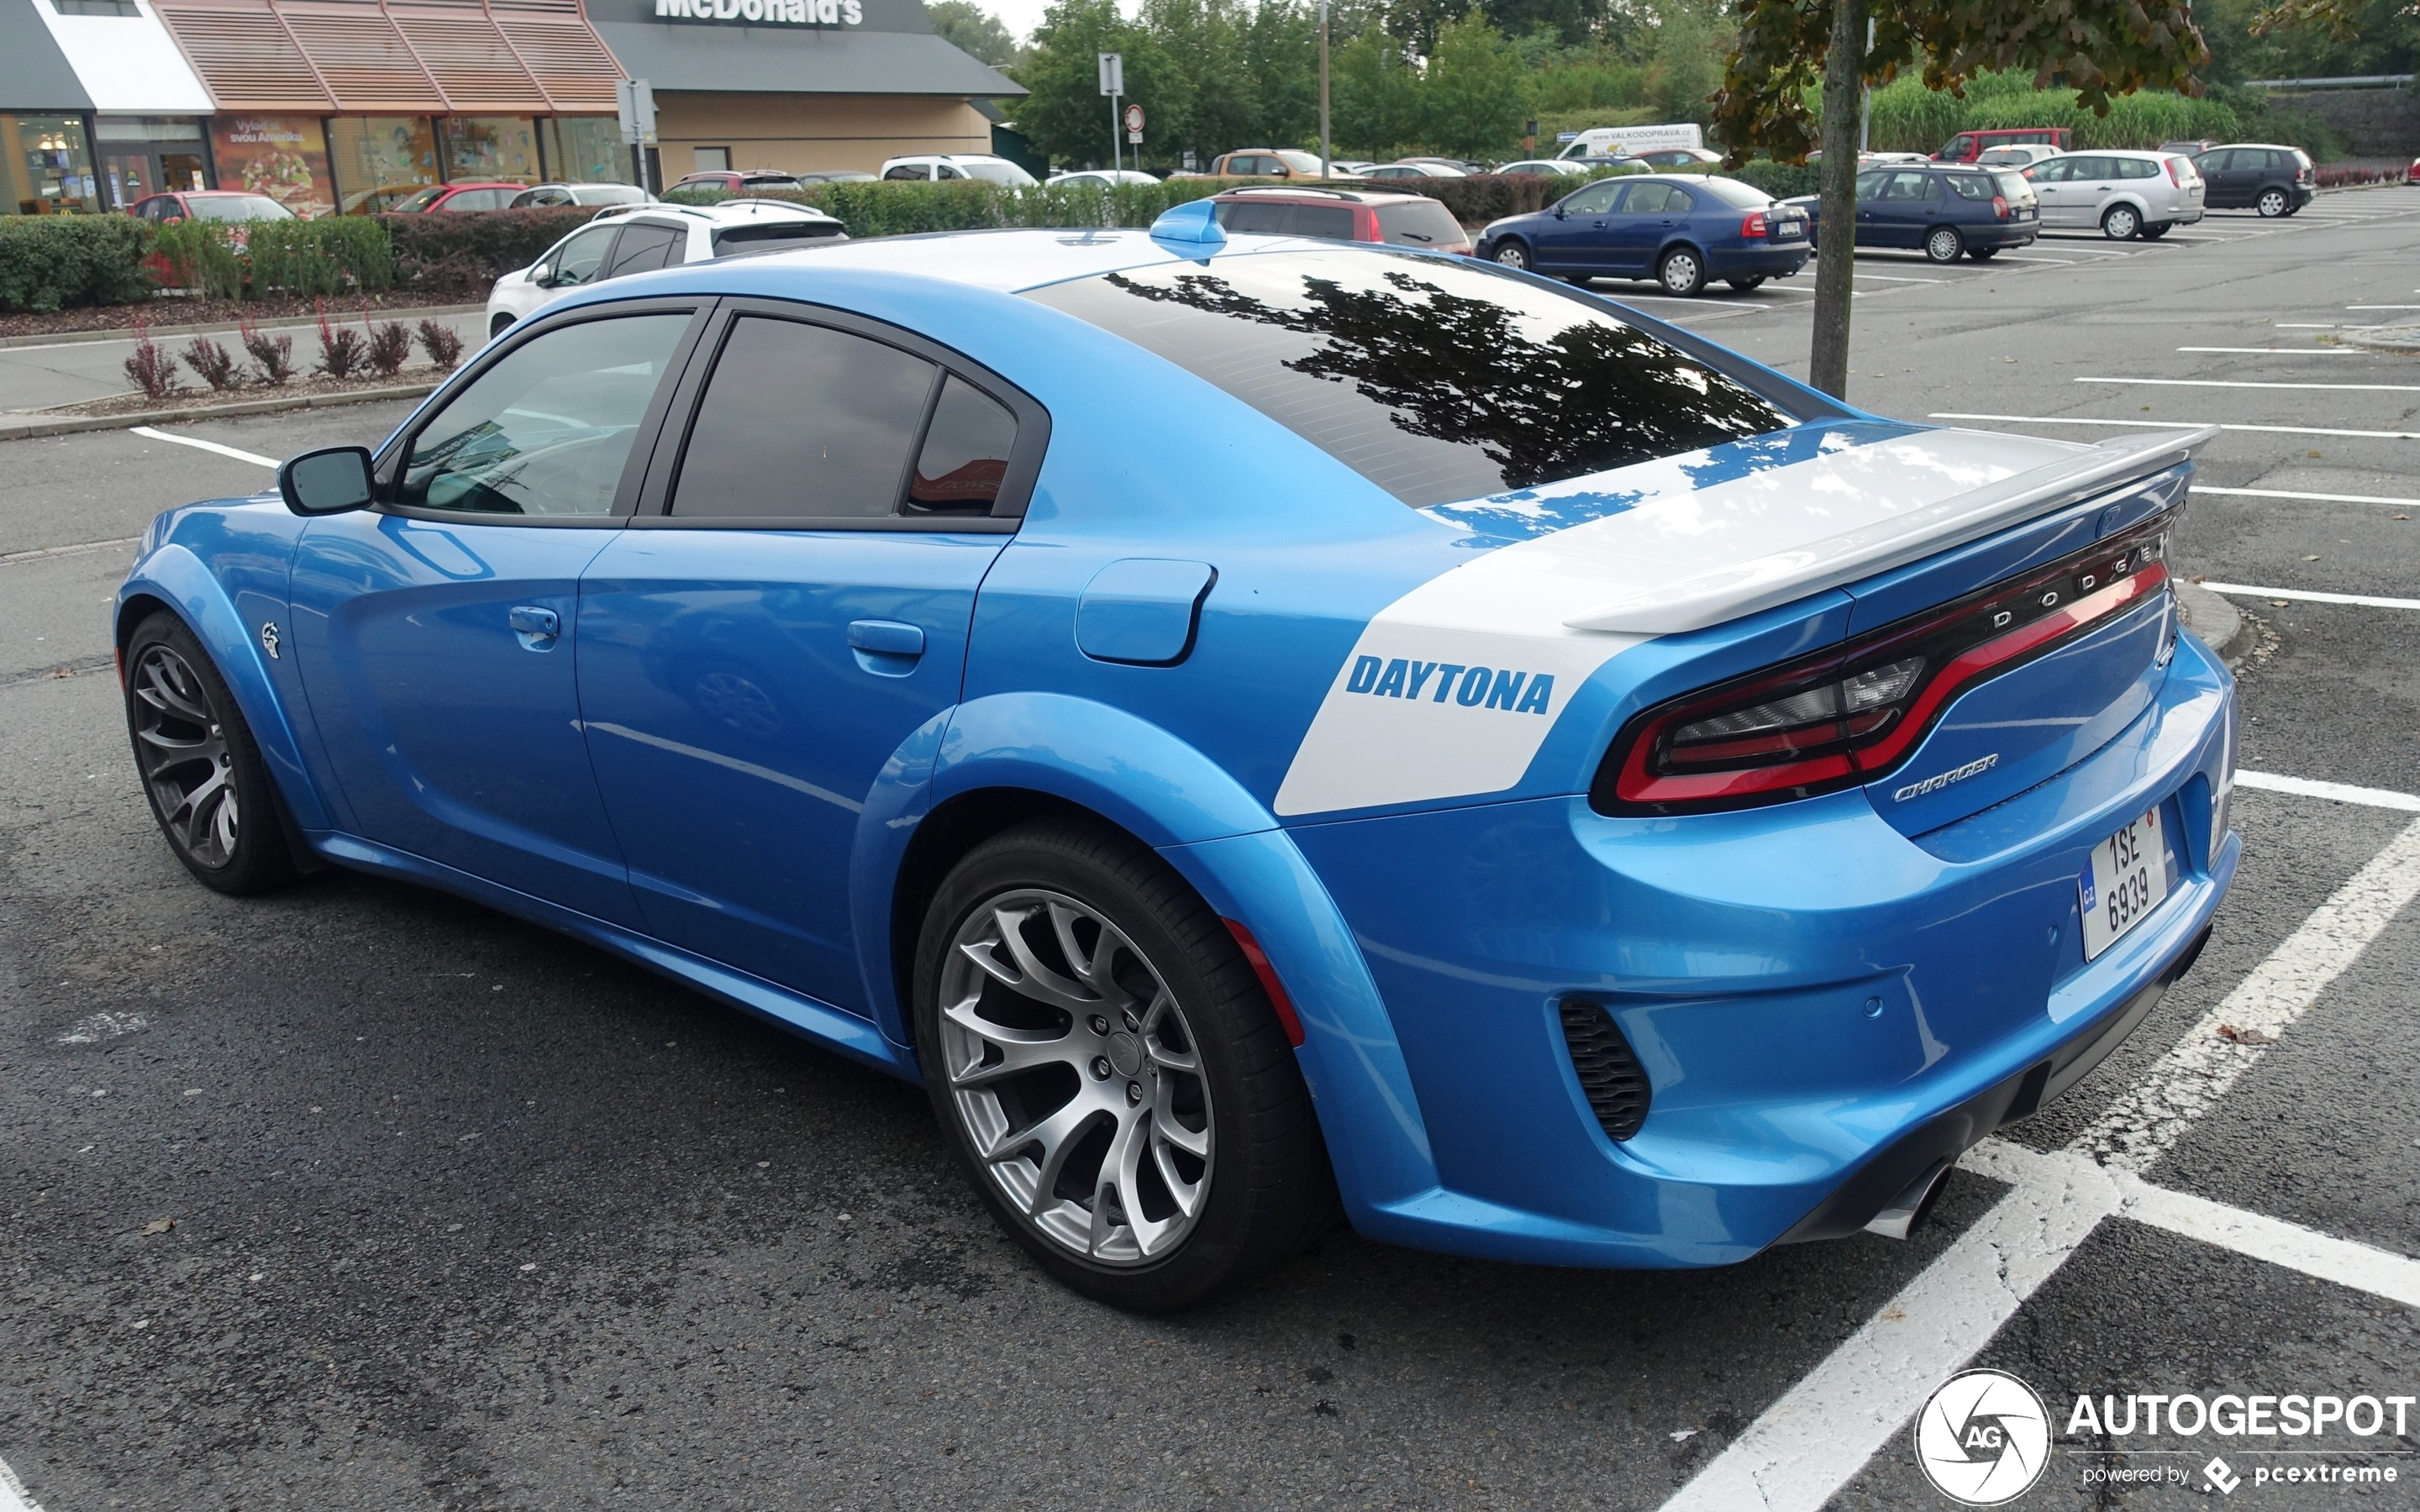 Dodge Charger Srt Hellcat Widebody Daytona 50th Anniversary 30 Setembro 2020 Autogespot